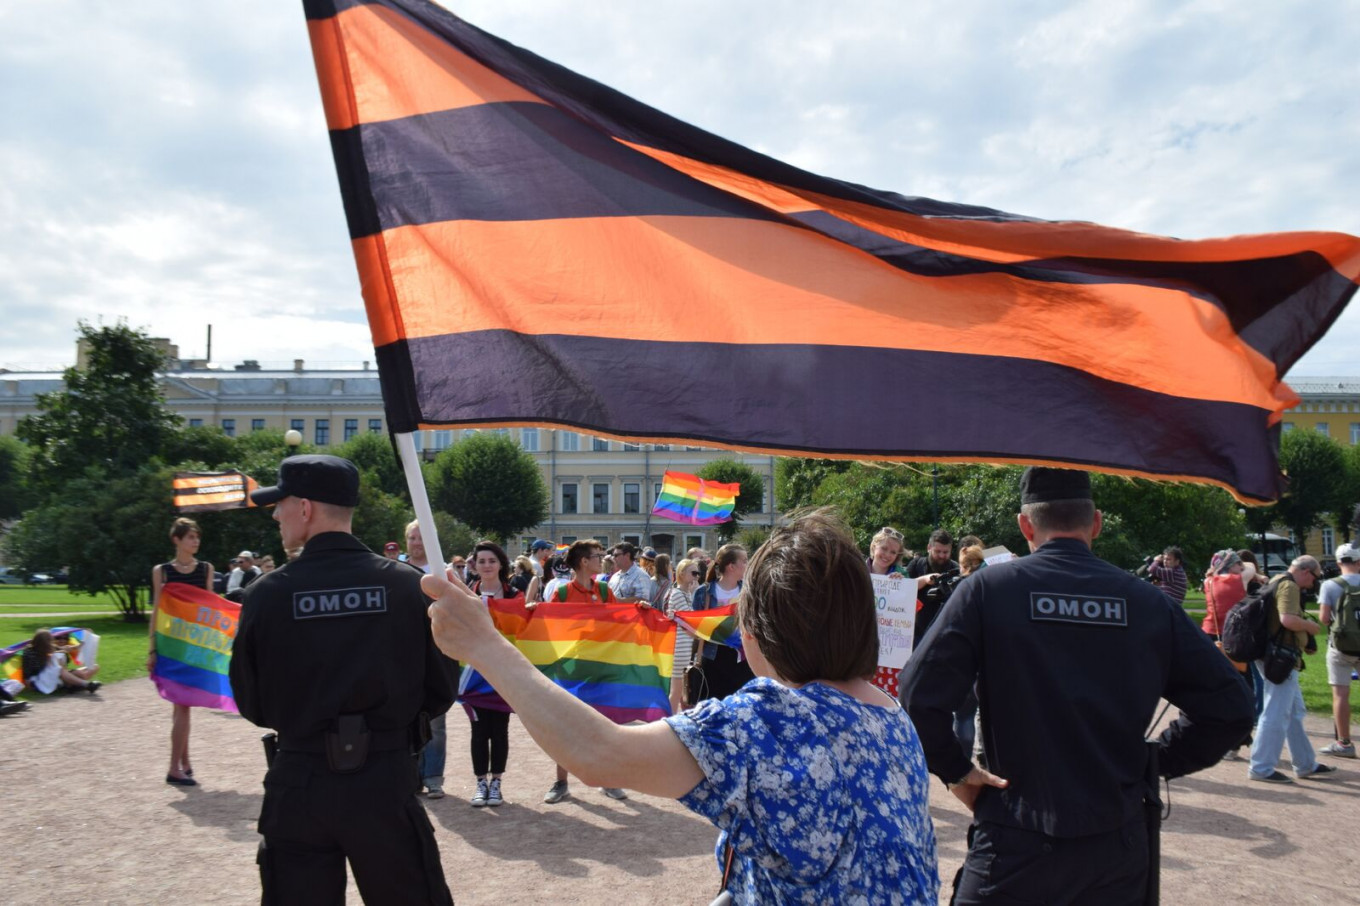 A handful of protesters waved the orange-and-black flag of St. George's, a symbol of Russian patriotism, while condemning the LGBT pride. Francesca Visser and Andreas Rossbach